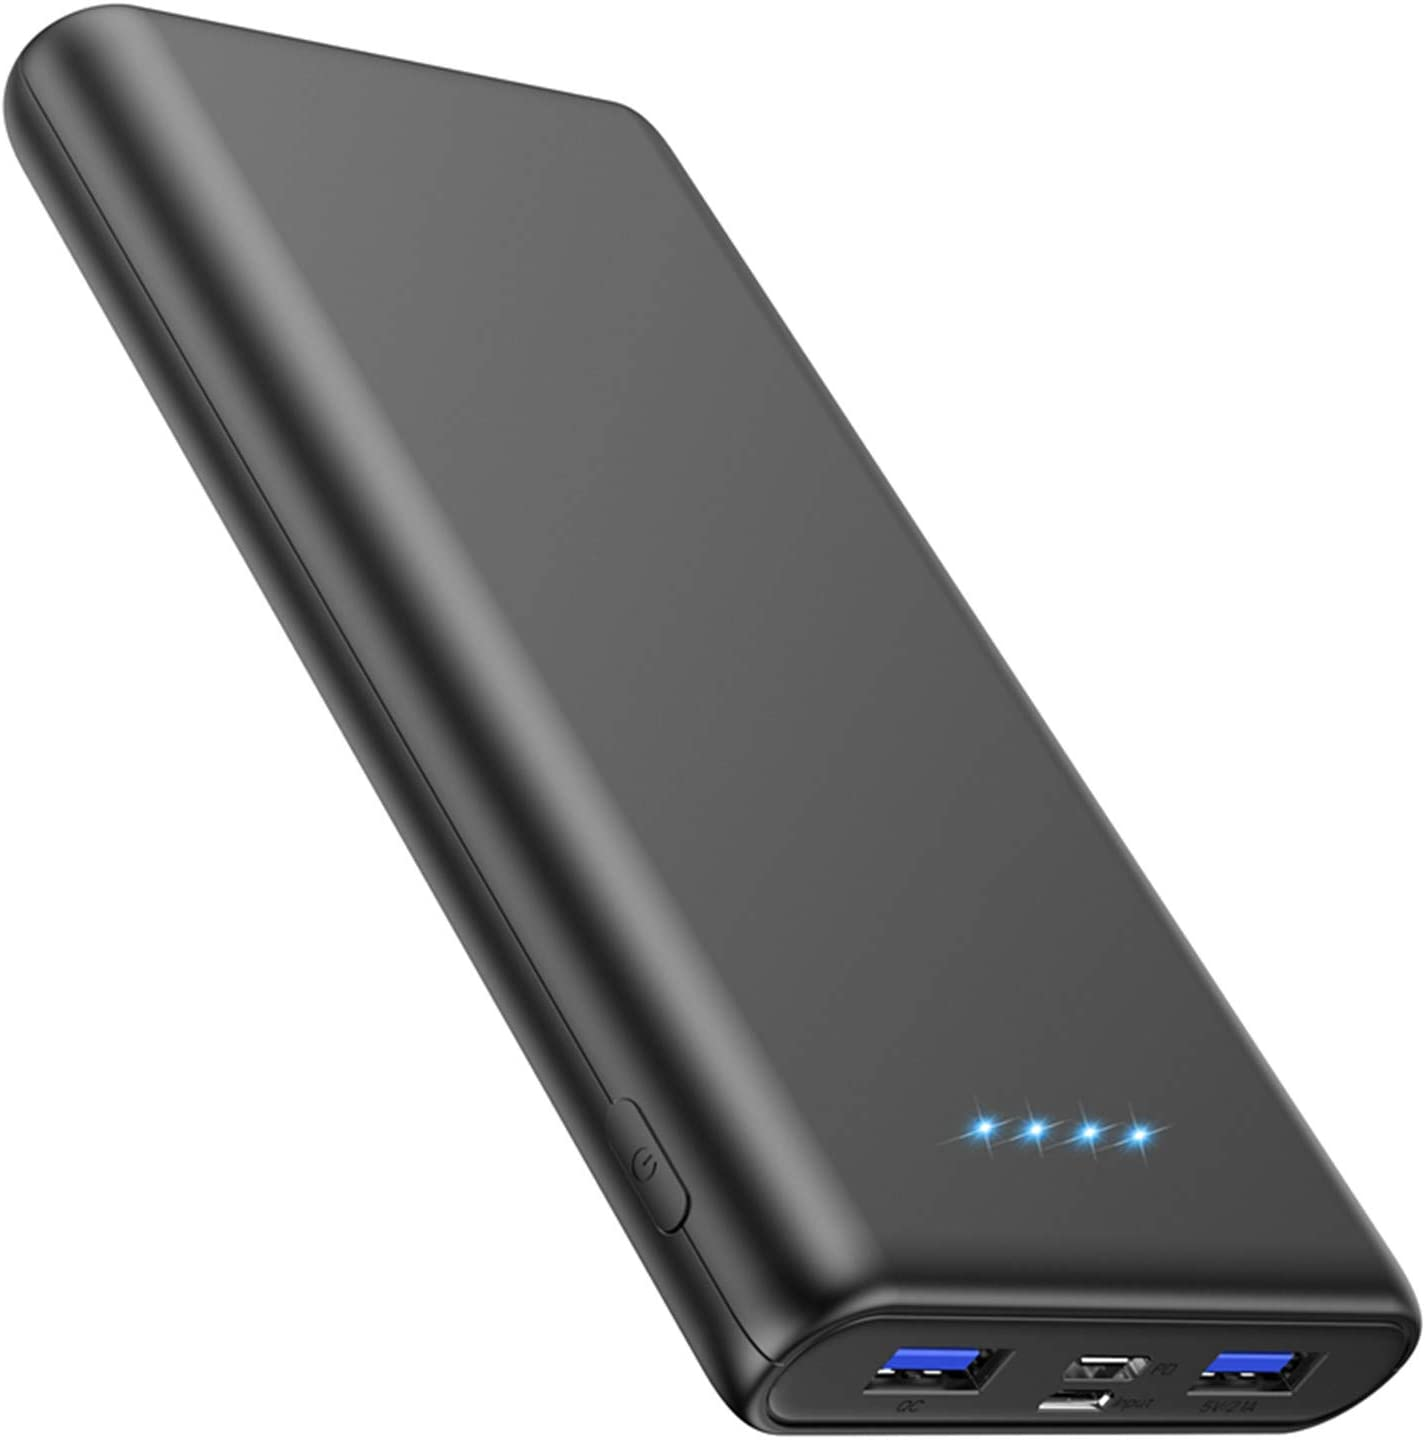 Portable Charger Power Bank, 26800mAh Quick Phone Charge 3.0 Fast Charging Power Delivery External Battery Pack 3 Output & 2 Input Type-C Power Banks Compatible with iPhone 12/11, Samsung,ect.